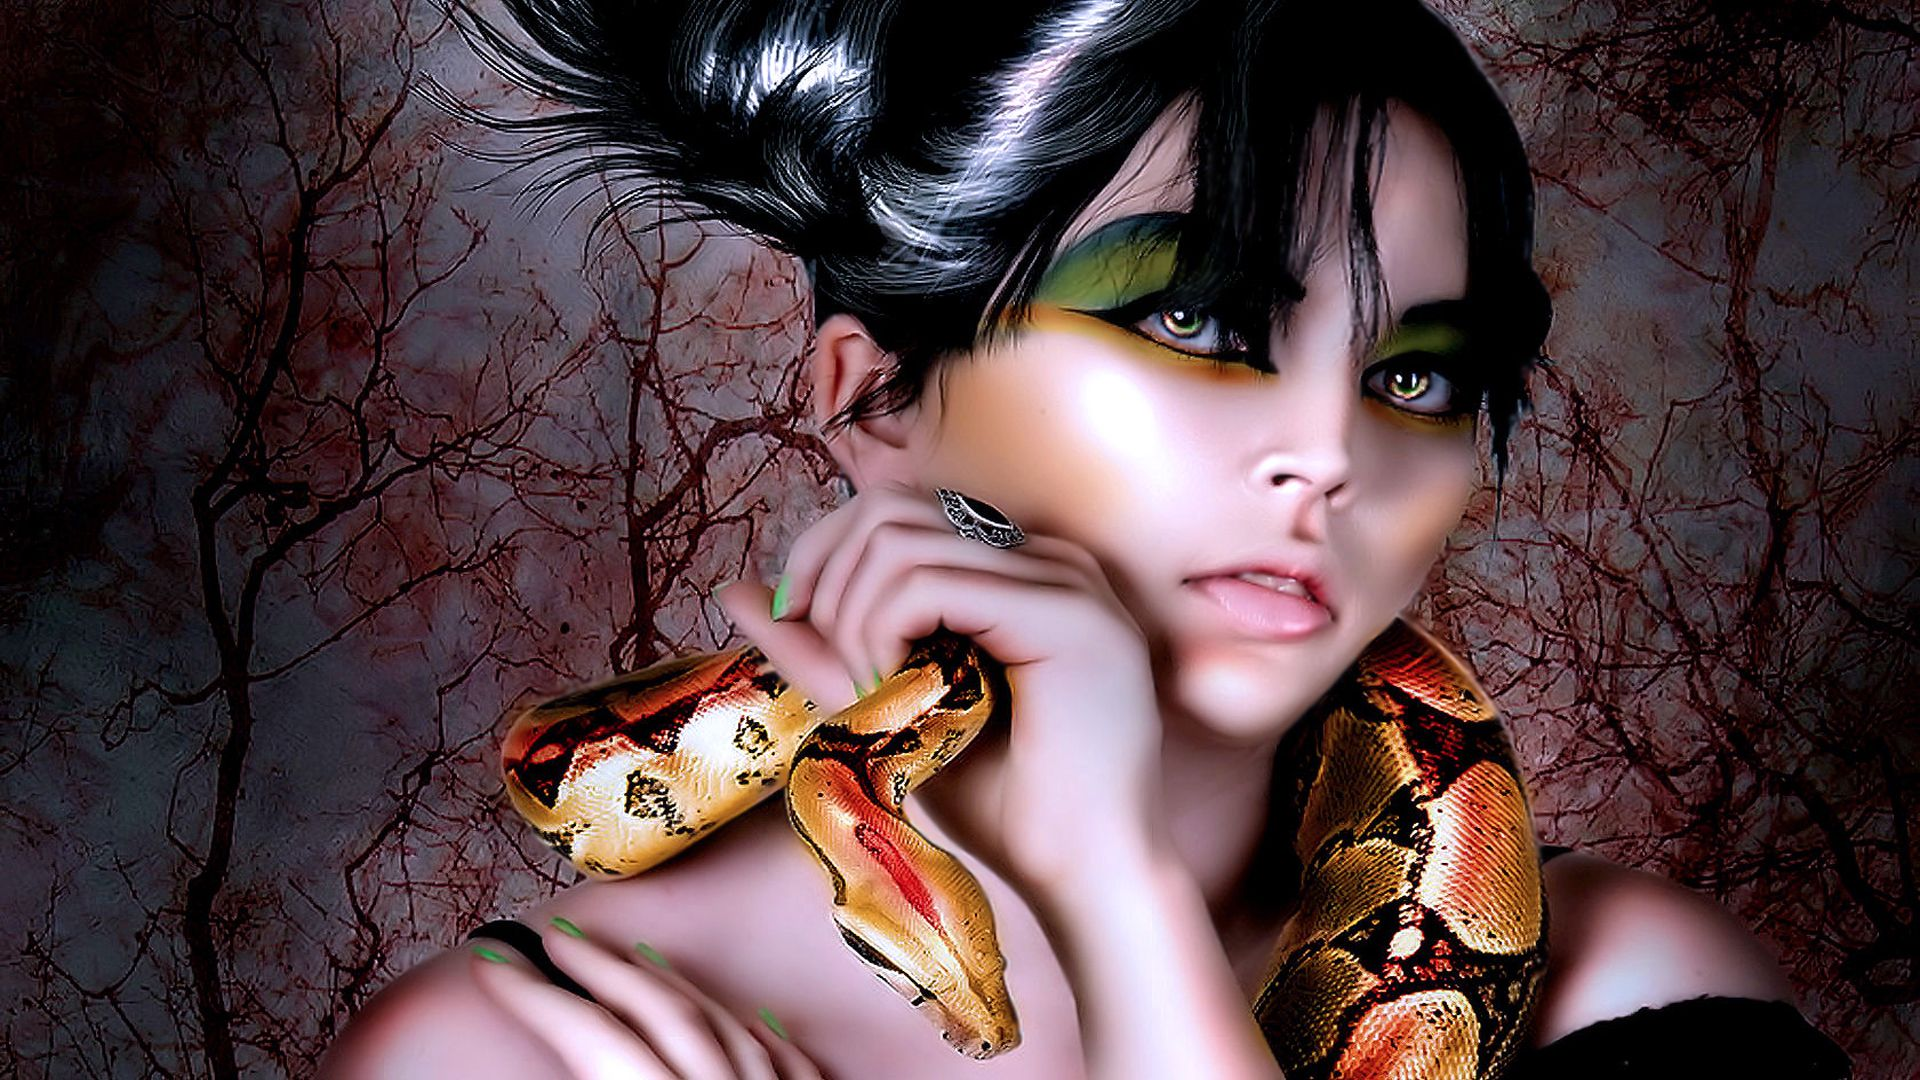 Mue fantasy women wallpaper beautiful fantasy women wallpapers girl makeup snake around his neck fantasy hd wallpapers voltagebd Choice Image